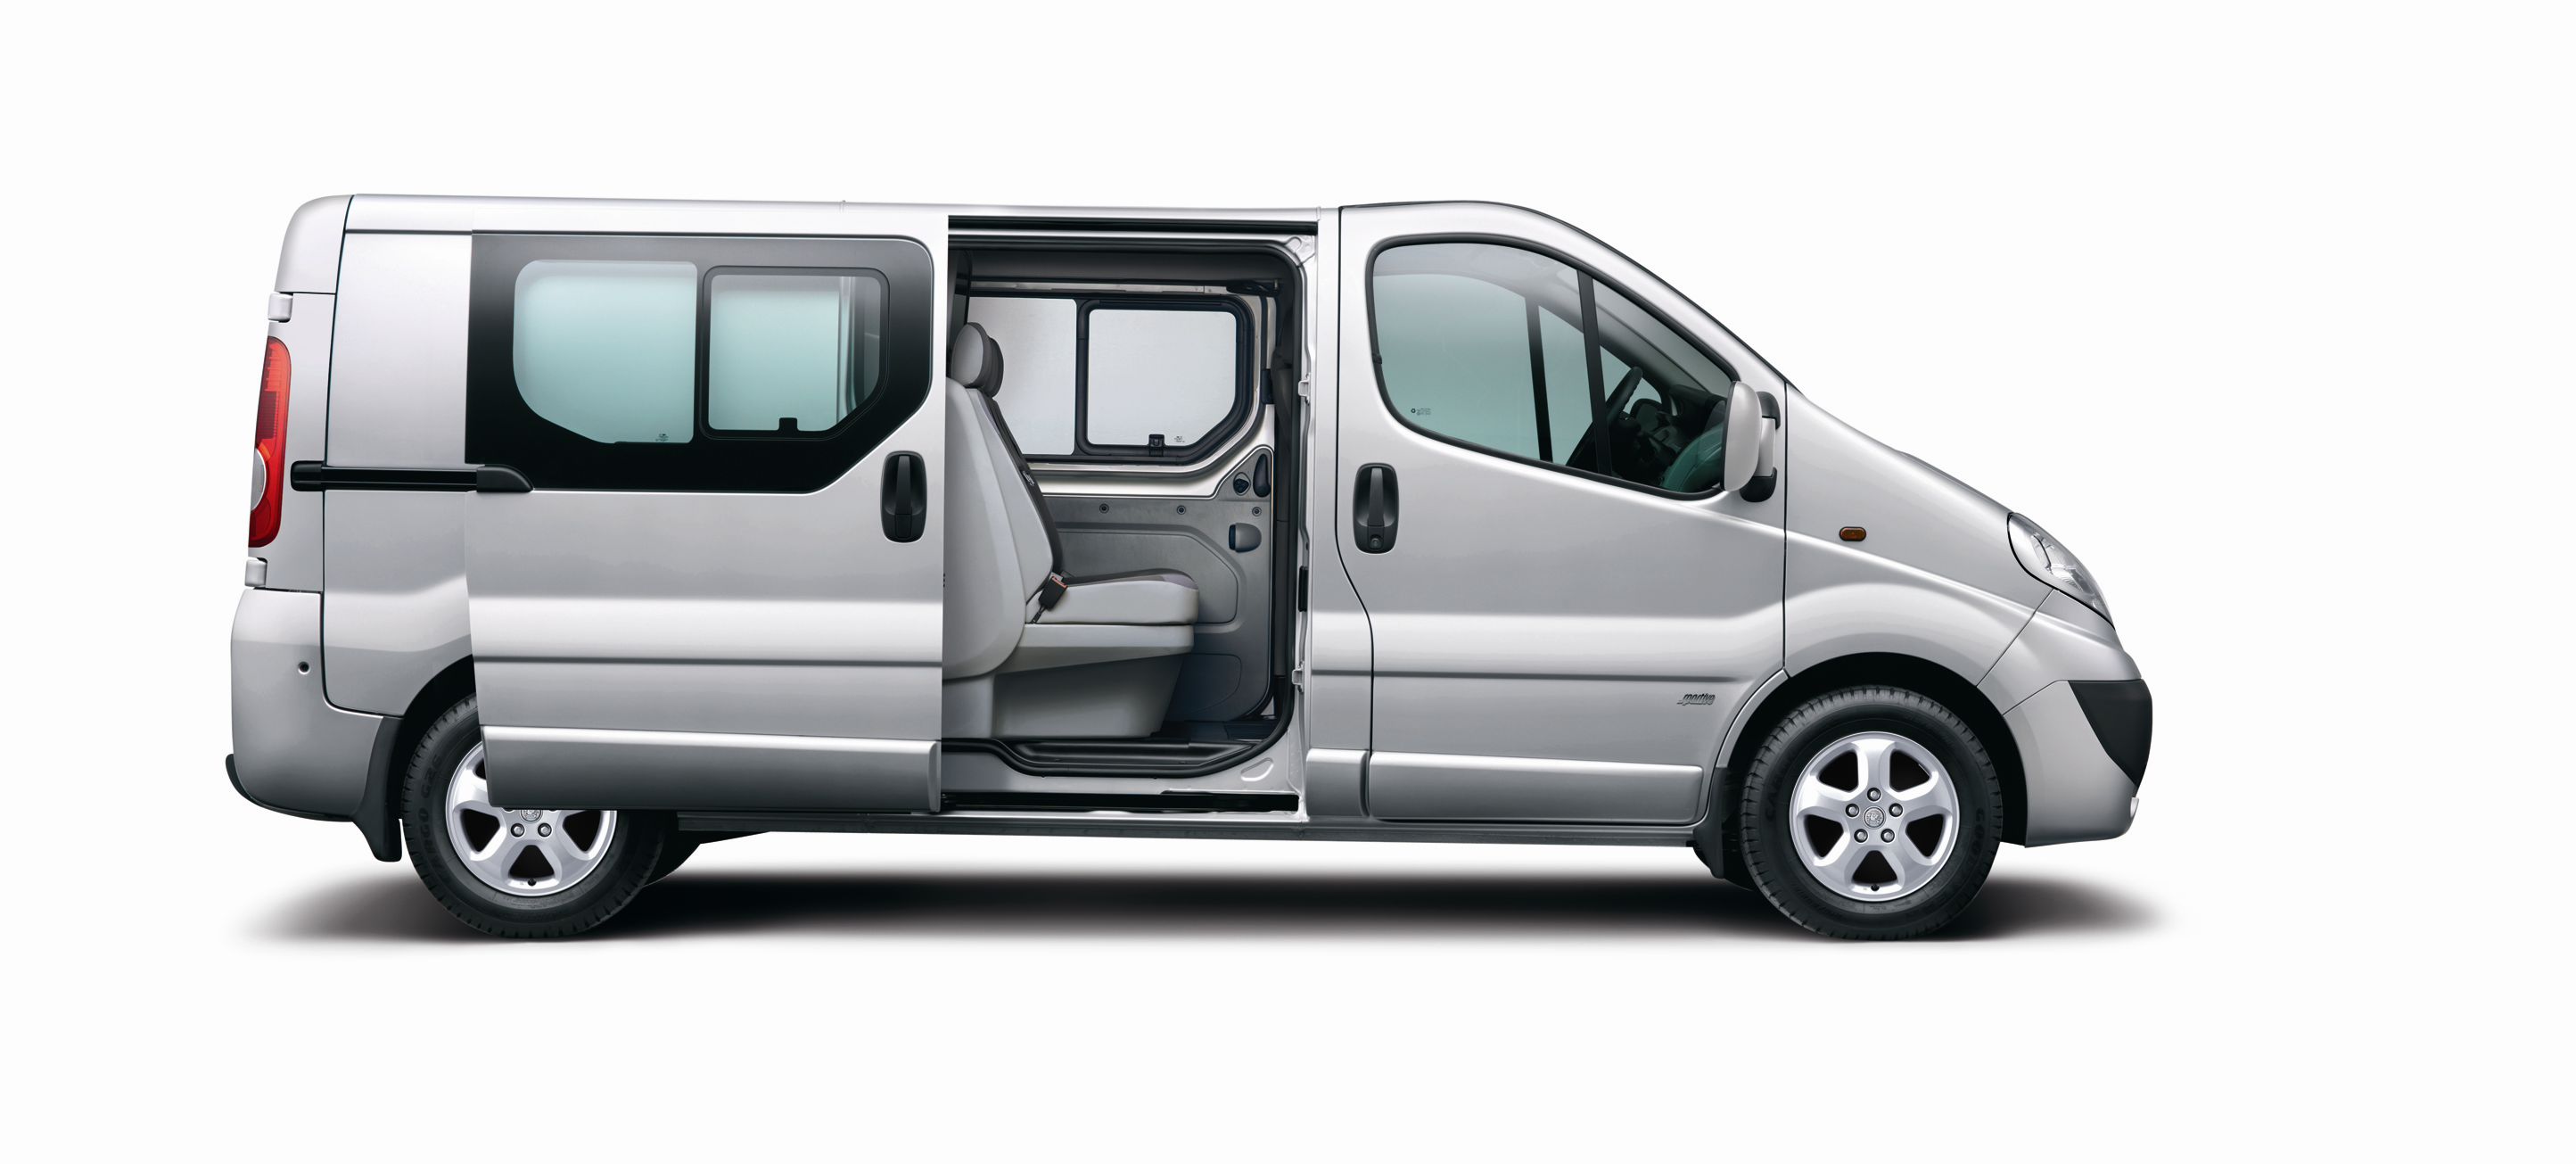 vauxhall vivaro lwb diesel 2 0cdti 115ps sportive doublecab world of vans world of vans. Black Bedroom Furniture Sets. Home Design Ideas